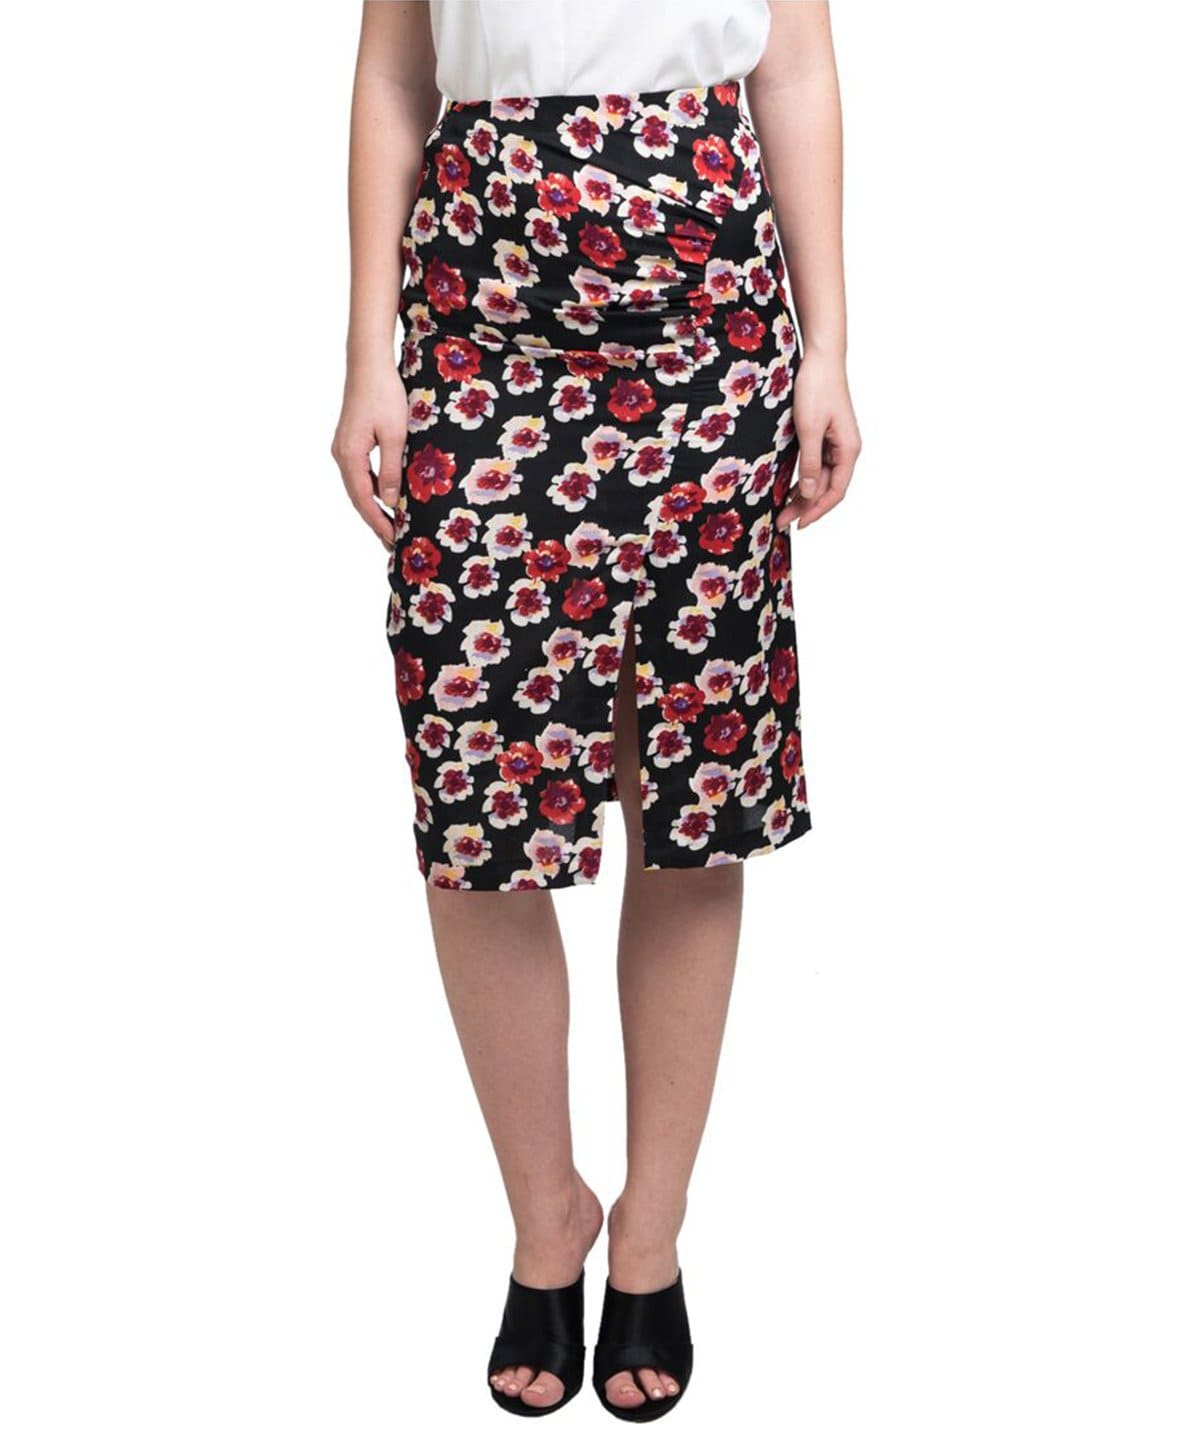 Black & Red Floral Print Pencil Skirt - Uptownie